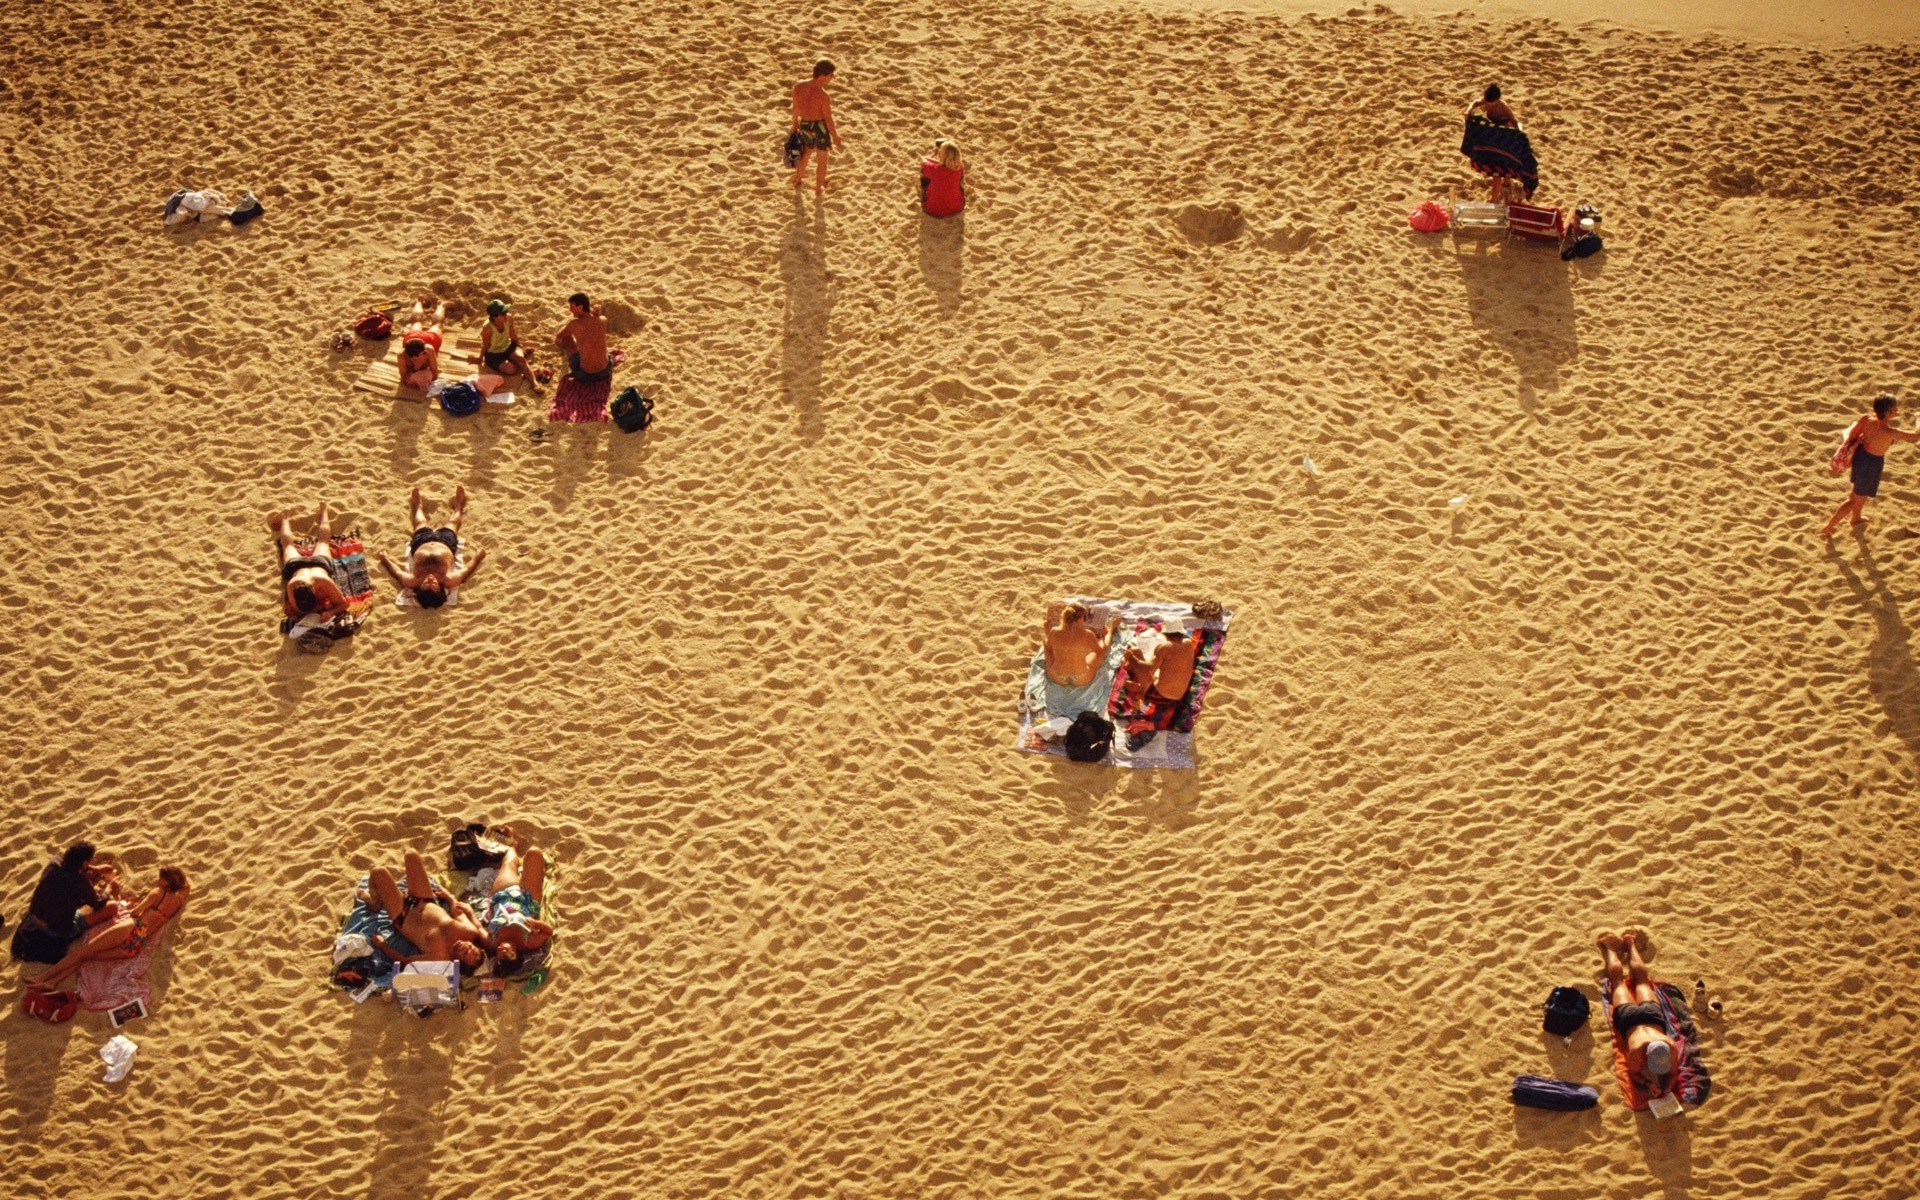 People on the beach top view